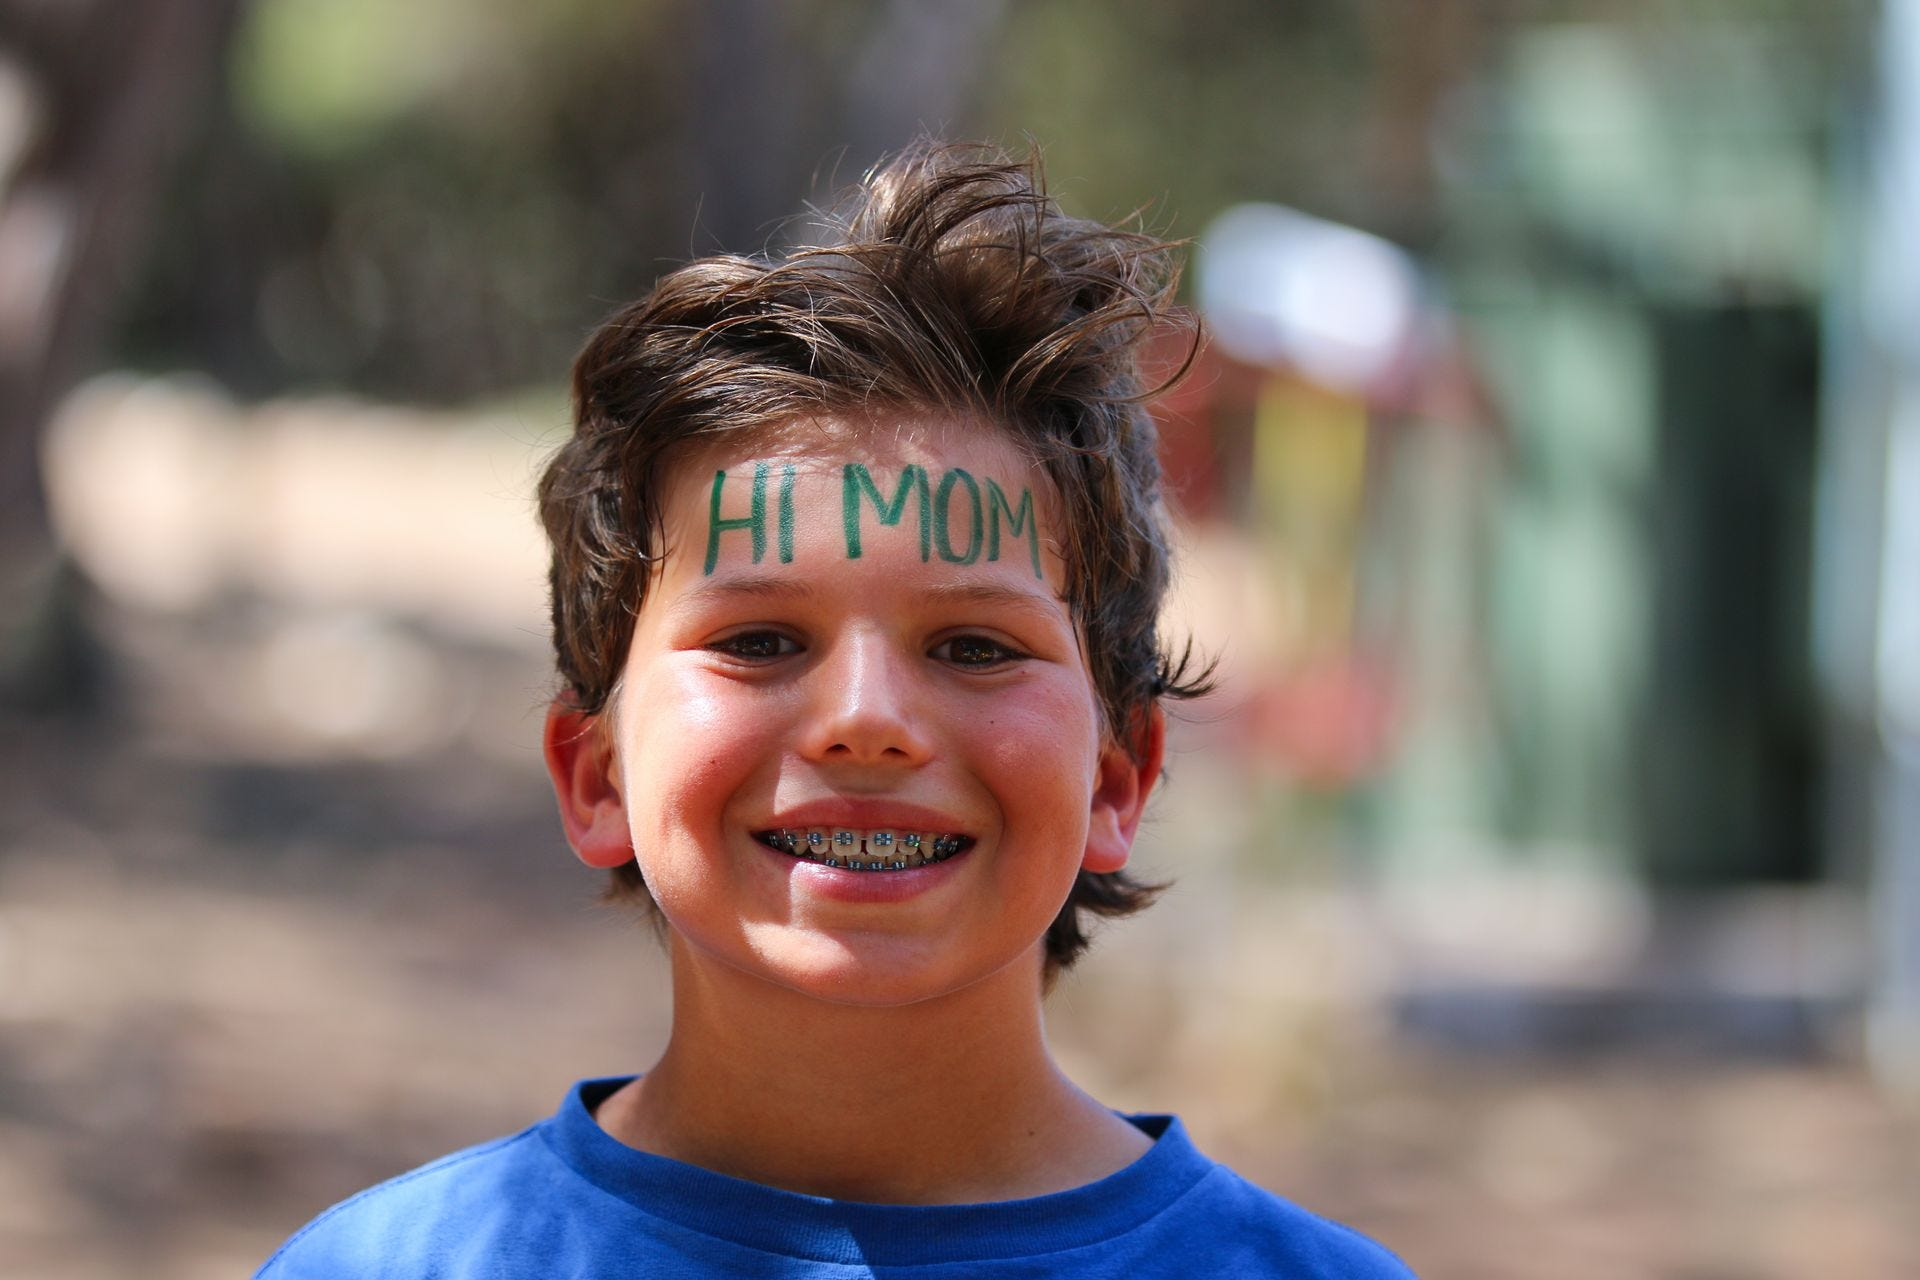 Facial recognition helps mom and dad see kids' camp photos, raises privacy concerns for some